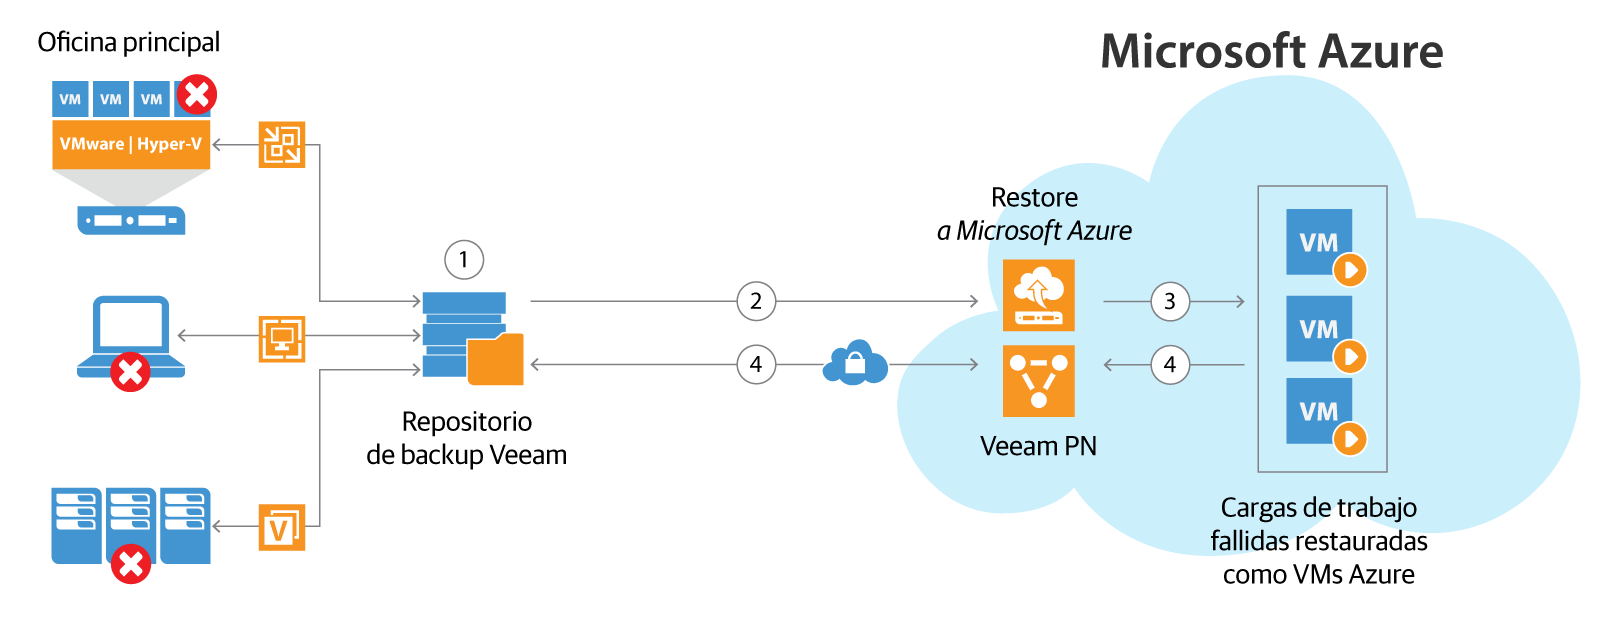 Veeam Disaster Recovery in Microsoft Azure combines the functionality of Veeam PN for Microsoft Azure (Veeam Powered Network) and Direct Restore to Microsoft Azure to deliver all-encompassing on-demand DR in the cloud. (Veeam PN = Veeam Powered Network; VPN = virtual private network).